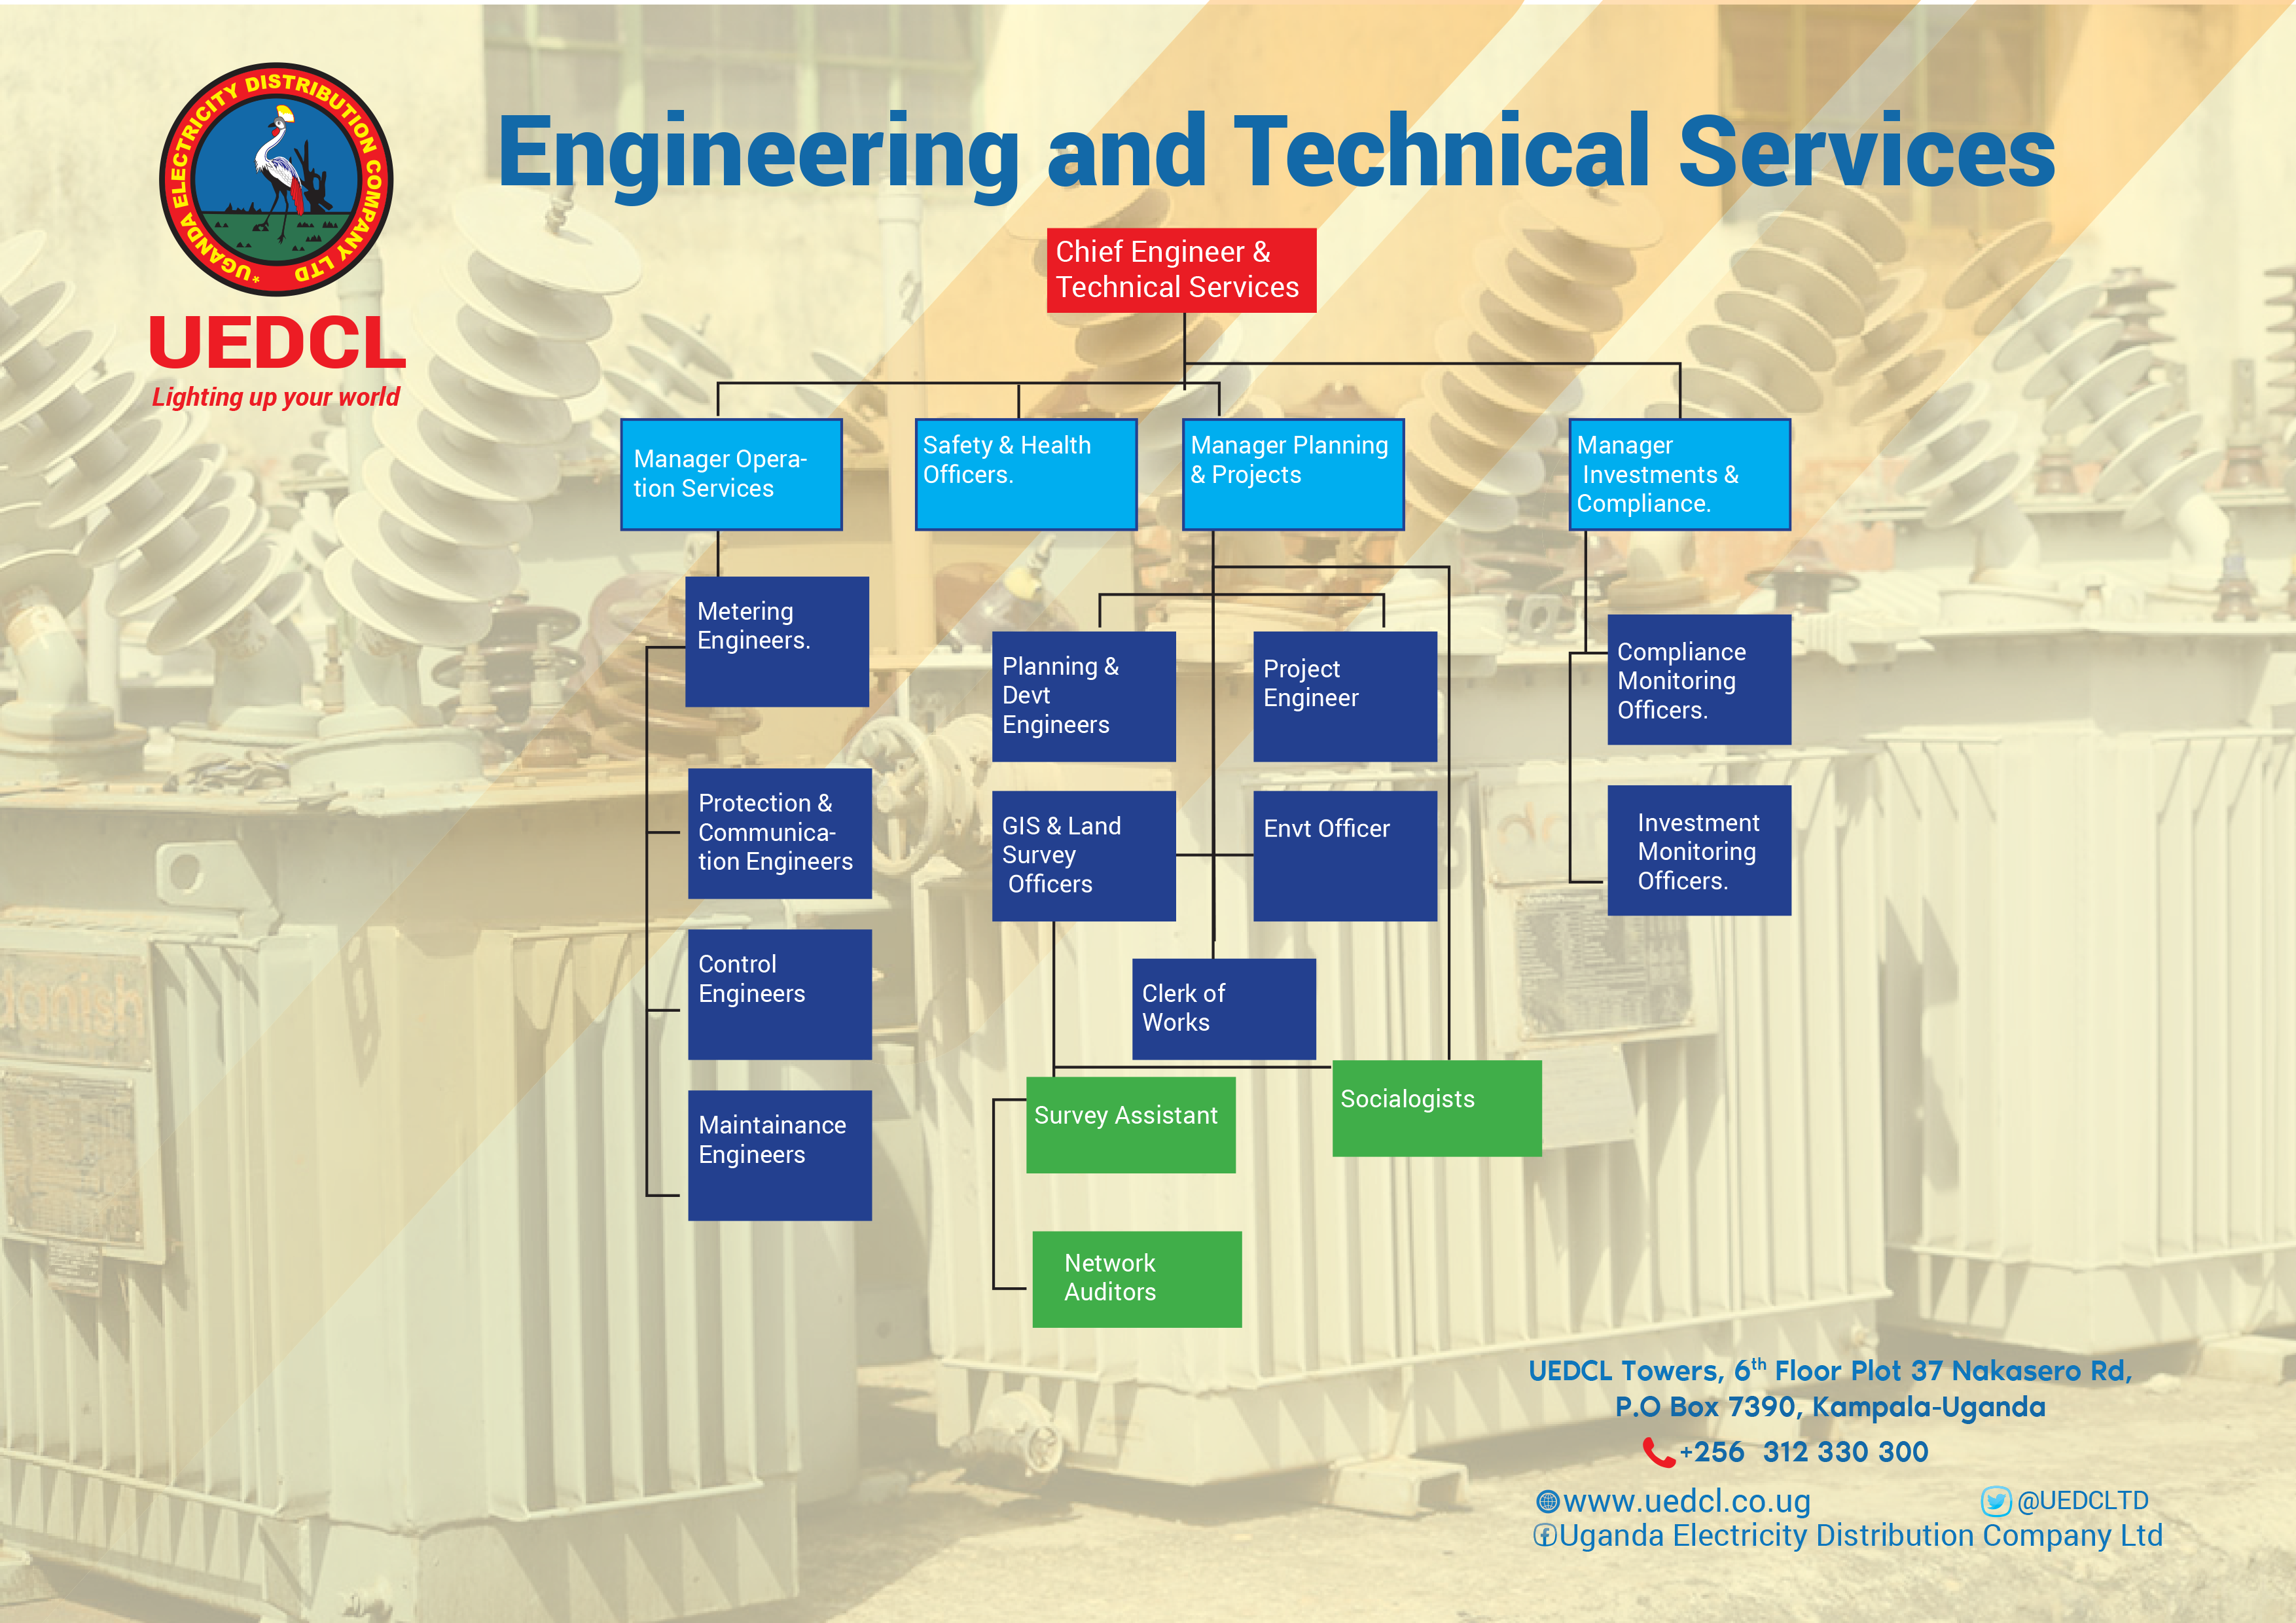 Engineering and Technical Services UEDCL structure